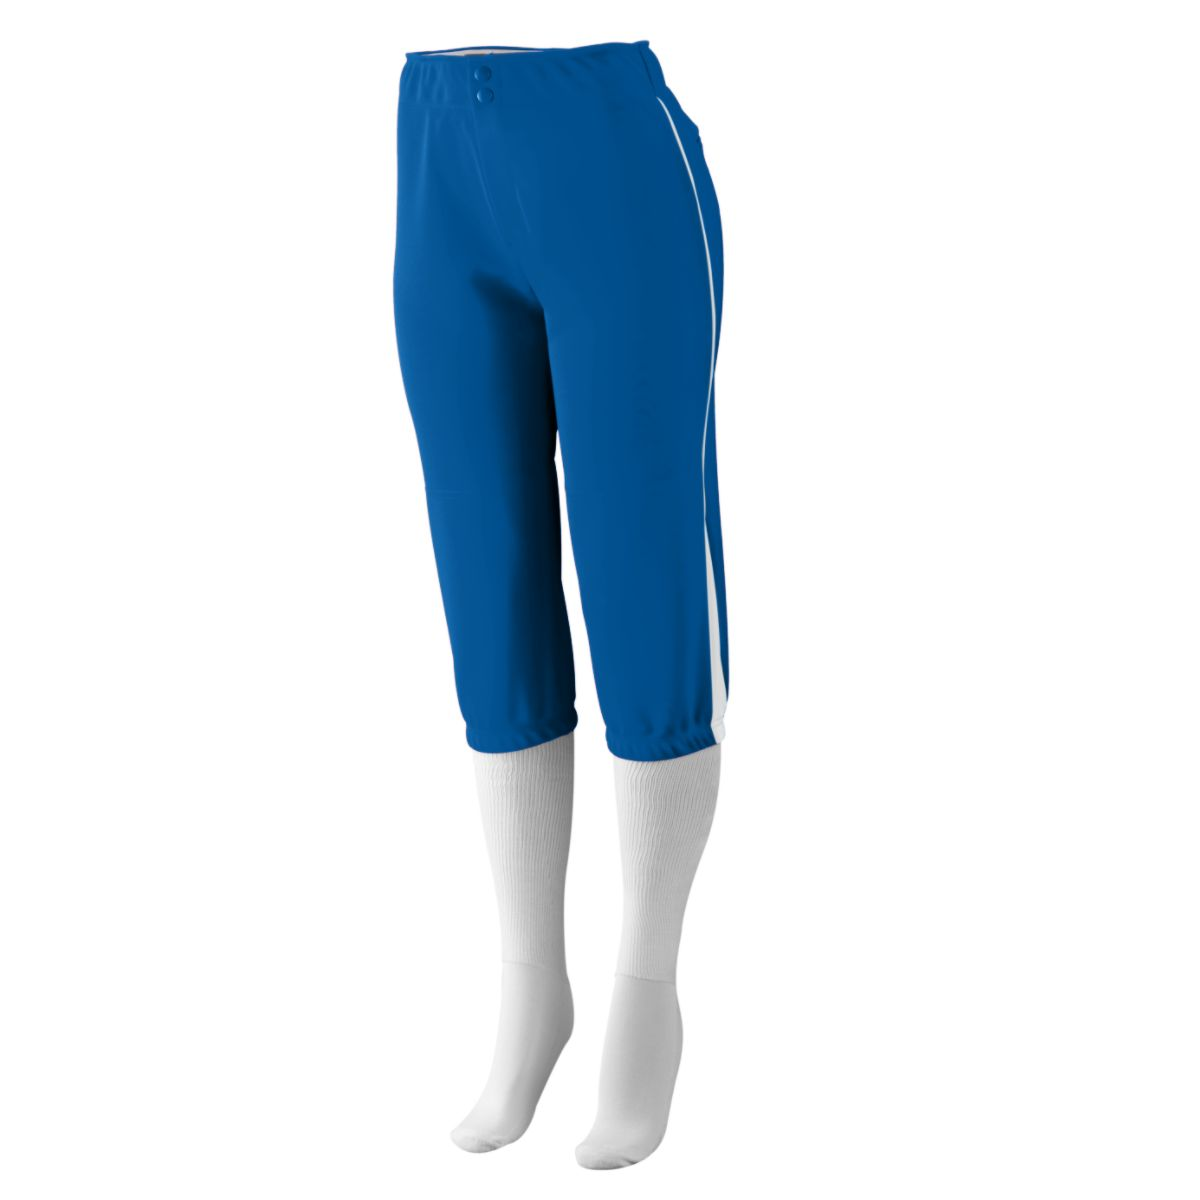 Augusta Sportswear Girls' Drive Low Rise Softball Pant L Royal/White - image 1 of 1